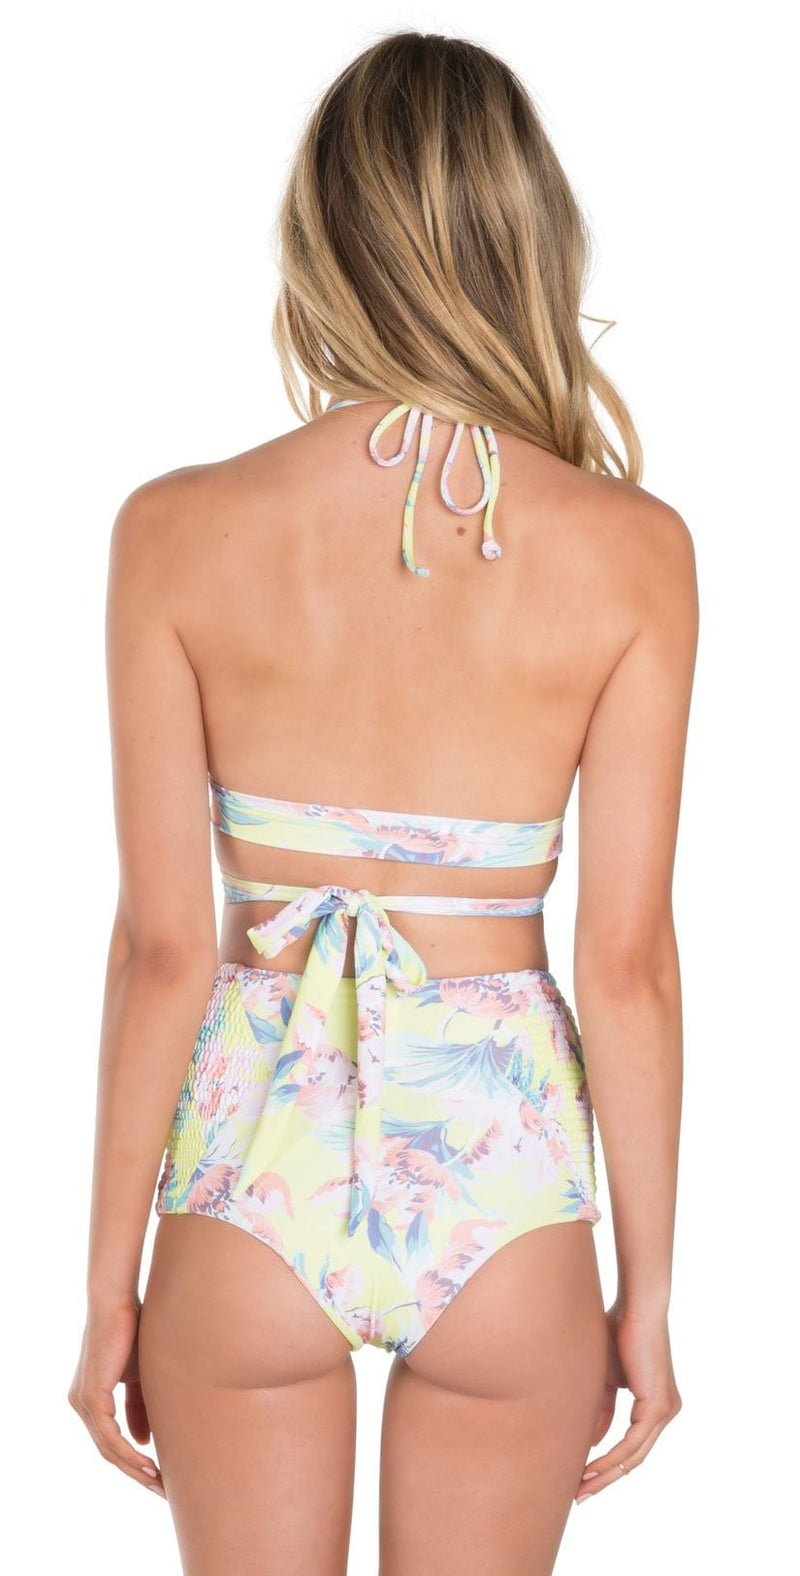 Tori Praver Francesca Limoncello Milos Floral High Waist Bottom: